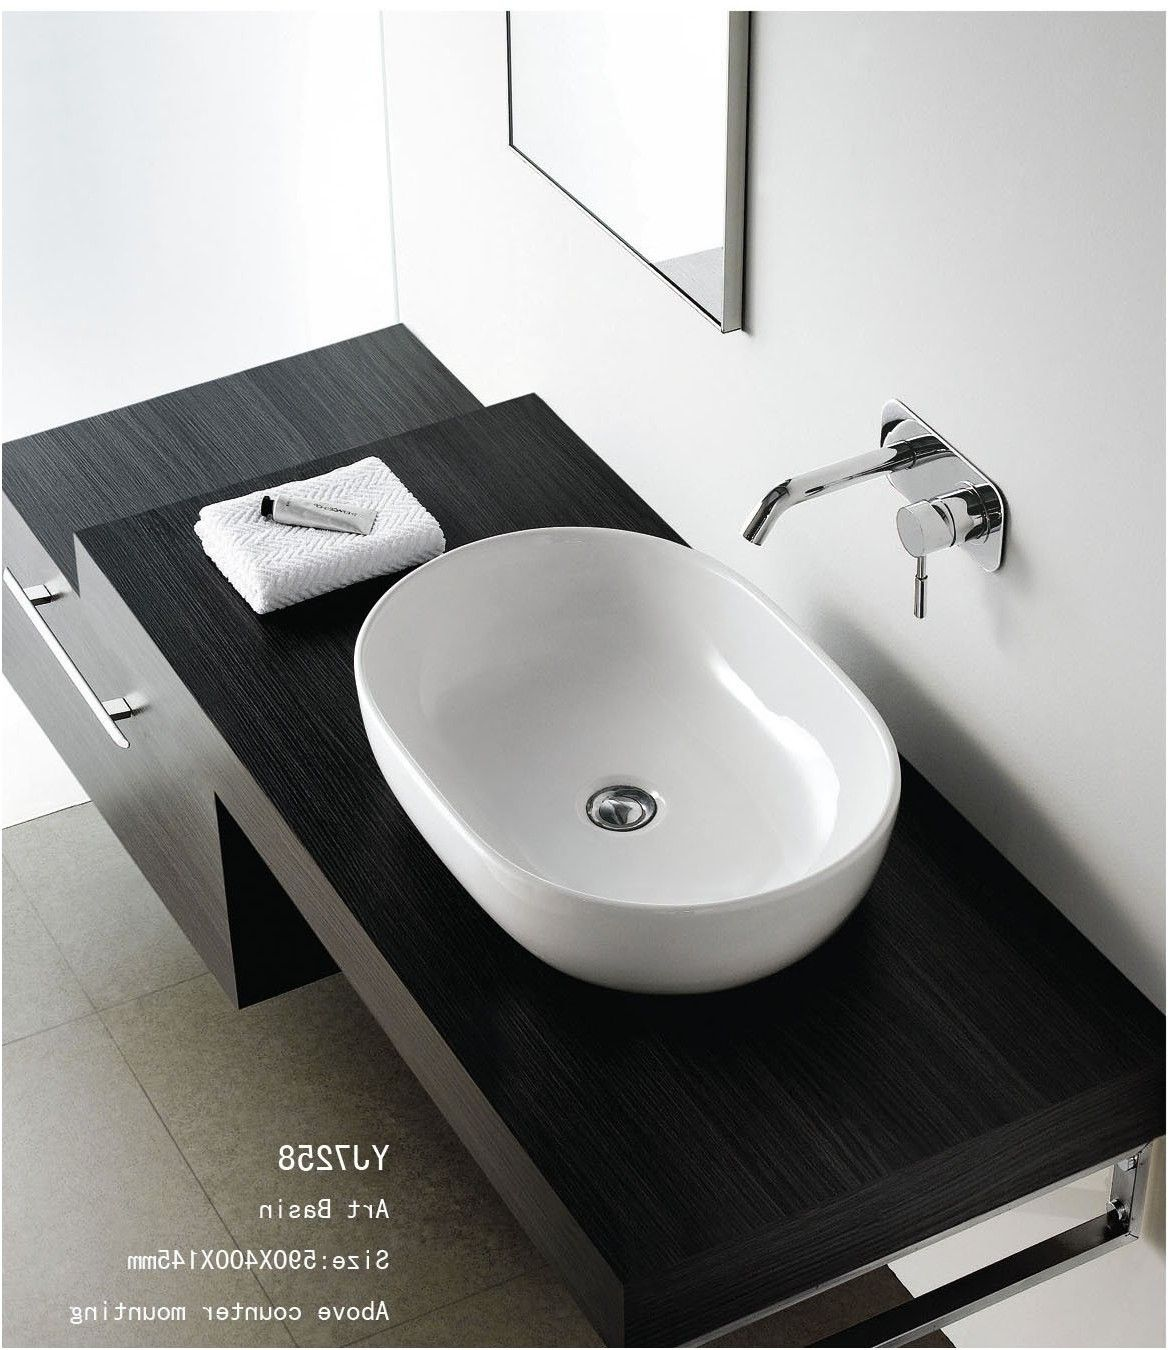 Designer Bathroom Sinks Basins Gurdjieffouspensky From Bathroom Wash Basin  Designs